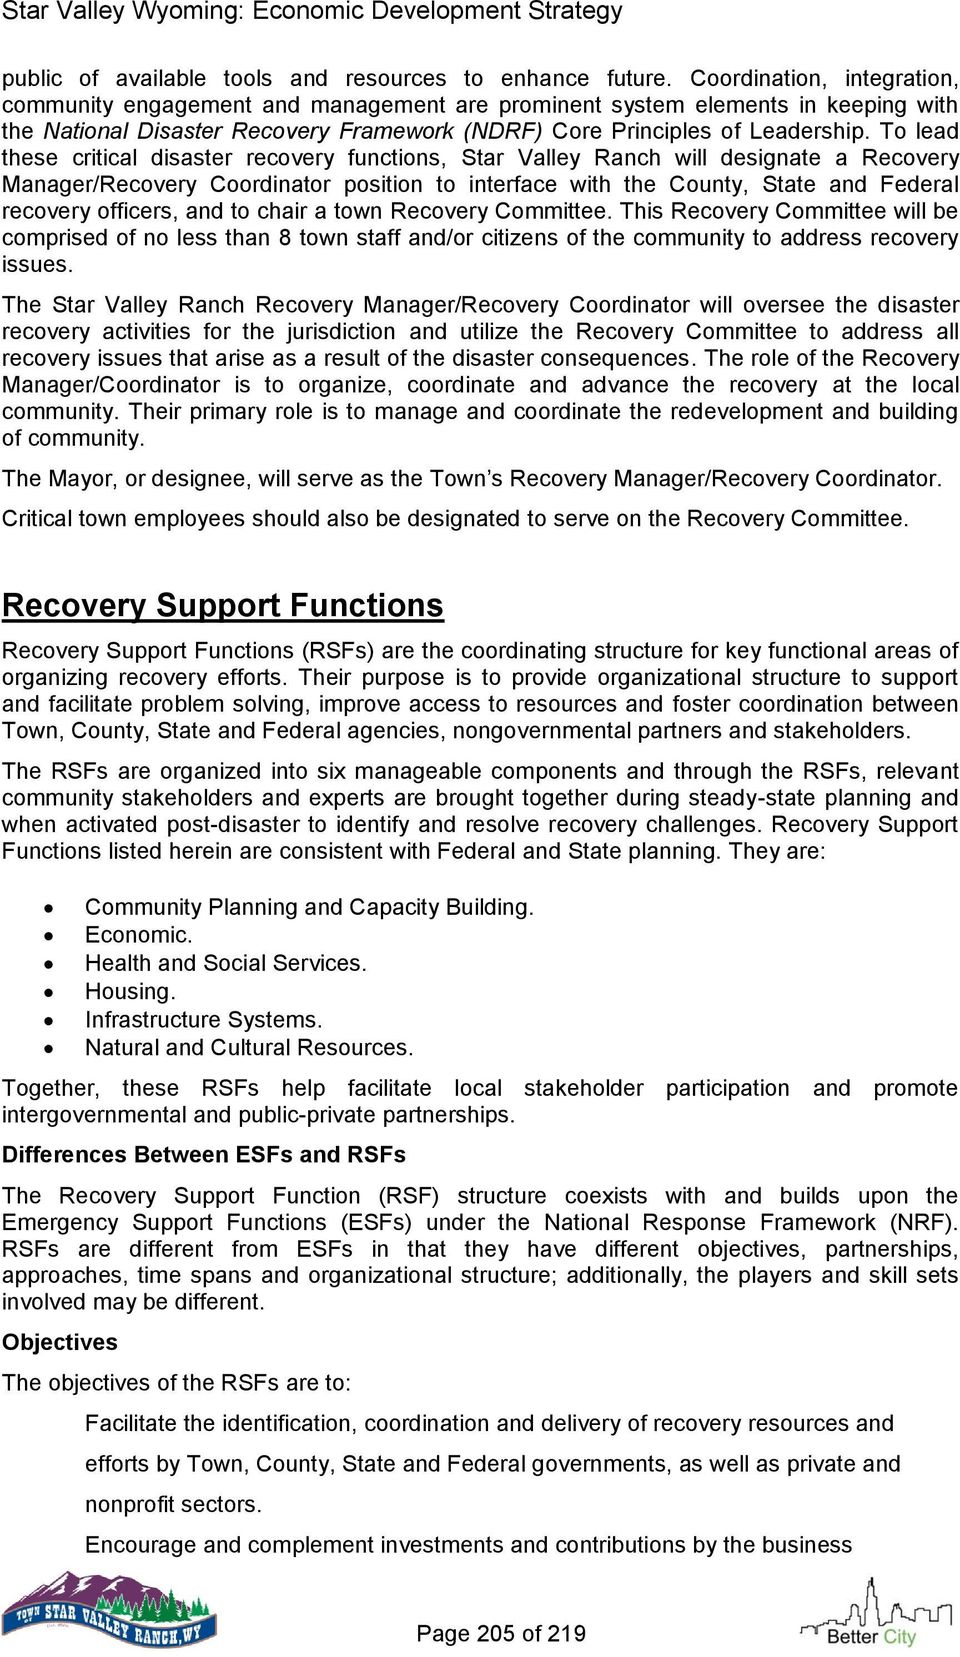 To lead these critical disaster recovery functions, Star Valley Ranch will designate a Recovery Manager/Recovery Coordinator position to interface with the County, State and Federal recovery